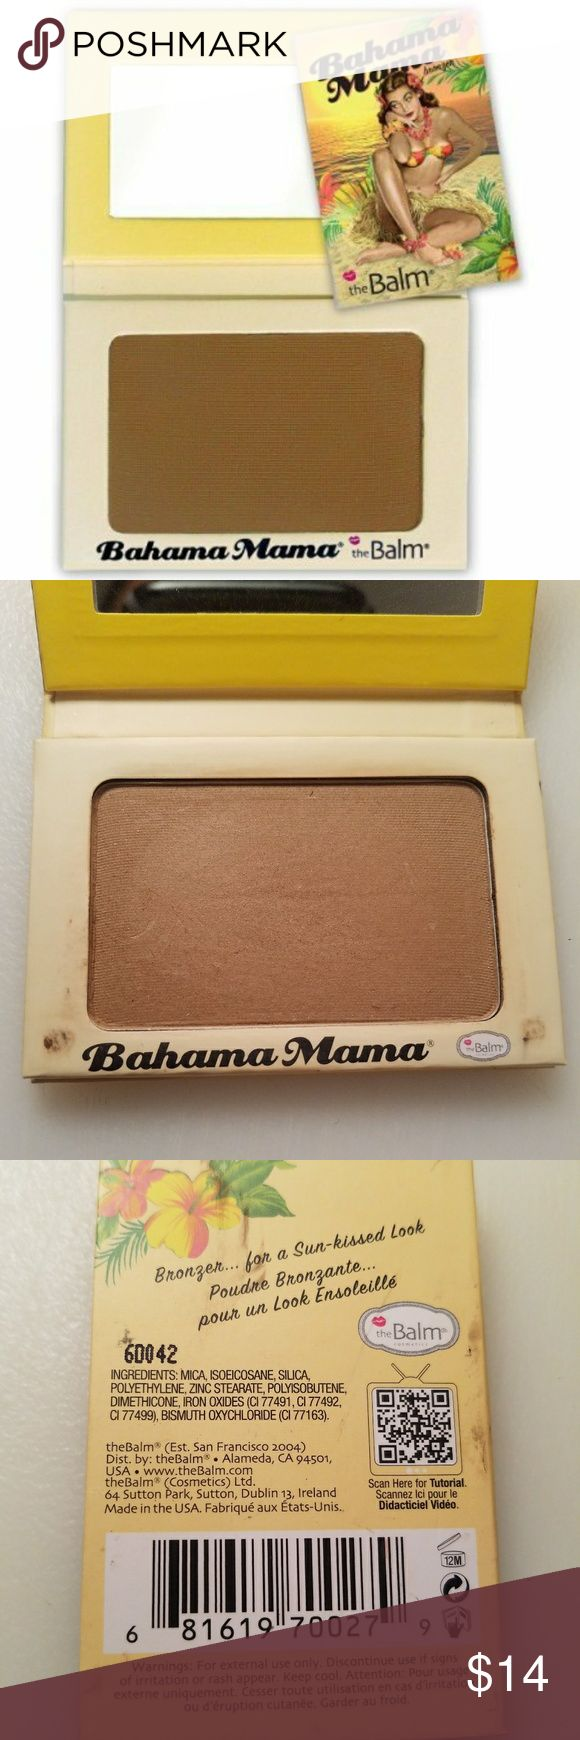 Bahama Mama Bronzer, Shadow & Contour Powder Finally, a Caribbean getaway in a compact! This matte bronzer creates the look of beautifully tanned skin without any orange undertones for a fresh-off-the-beach glow. Bahama Mama also doubles as the perfect contour powder, neutral brow-filler and matte brown eyeshadow. Yes, this tropical beauty keeps busy!  Gently used. Cute packaging.  I'm an NC42 (MAC), this shade didn't work for me as it added little to no bronzing effect.  *Will sanitize…